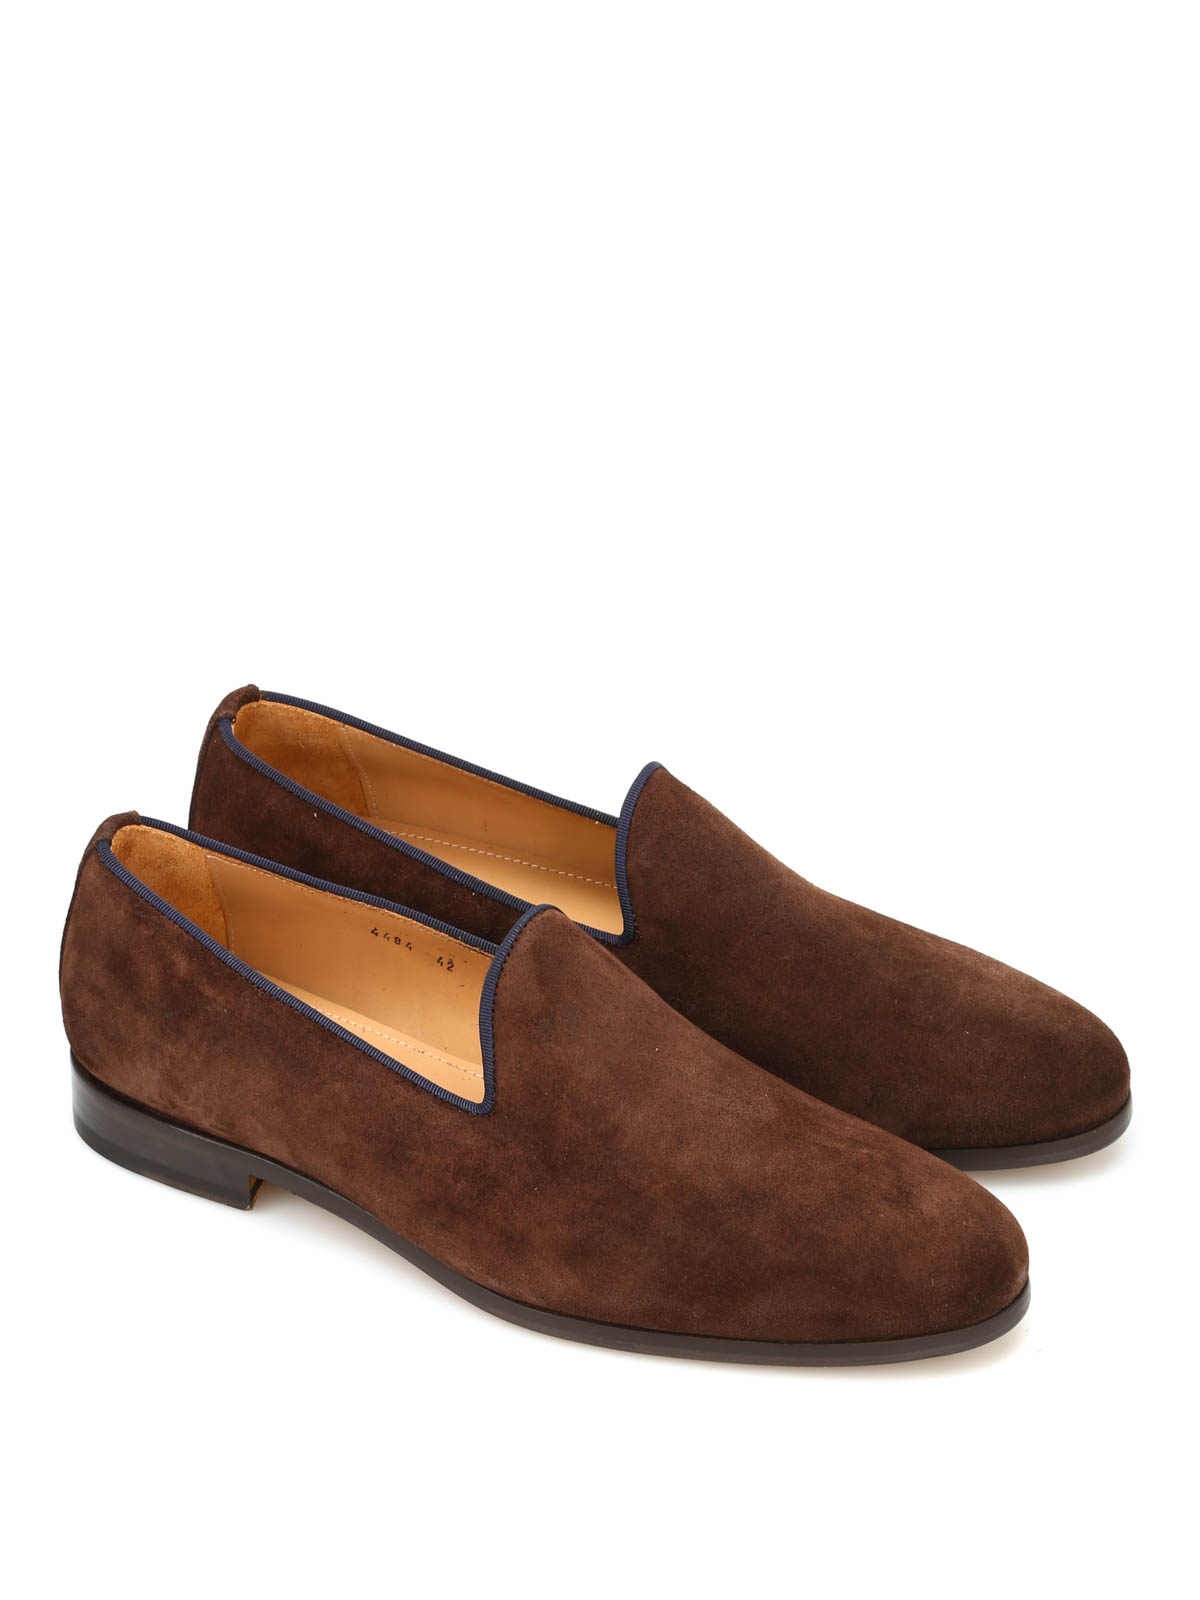 suede slippers by belsire loafers slippers ikrix